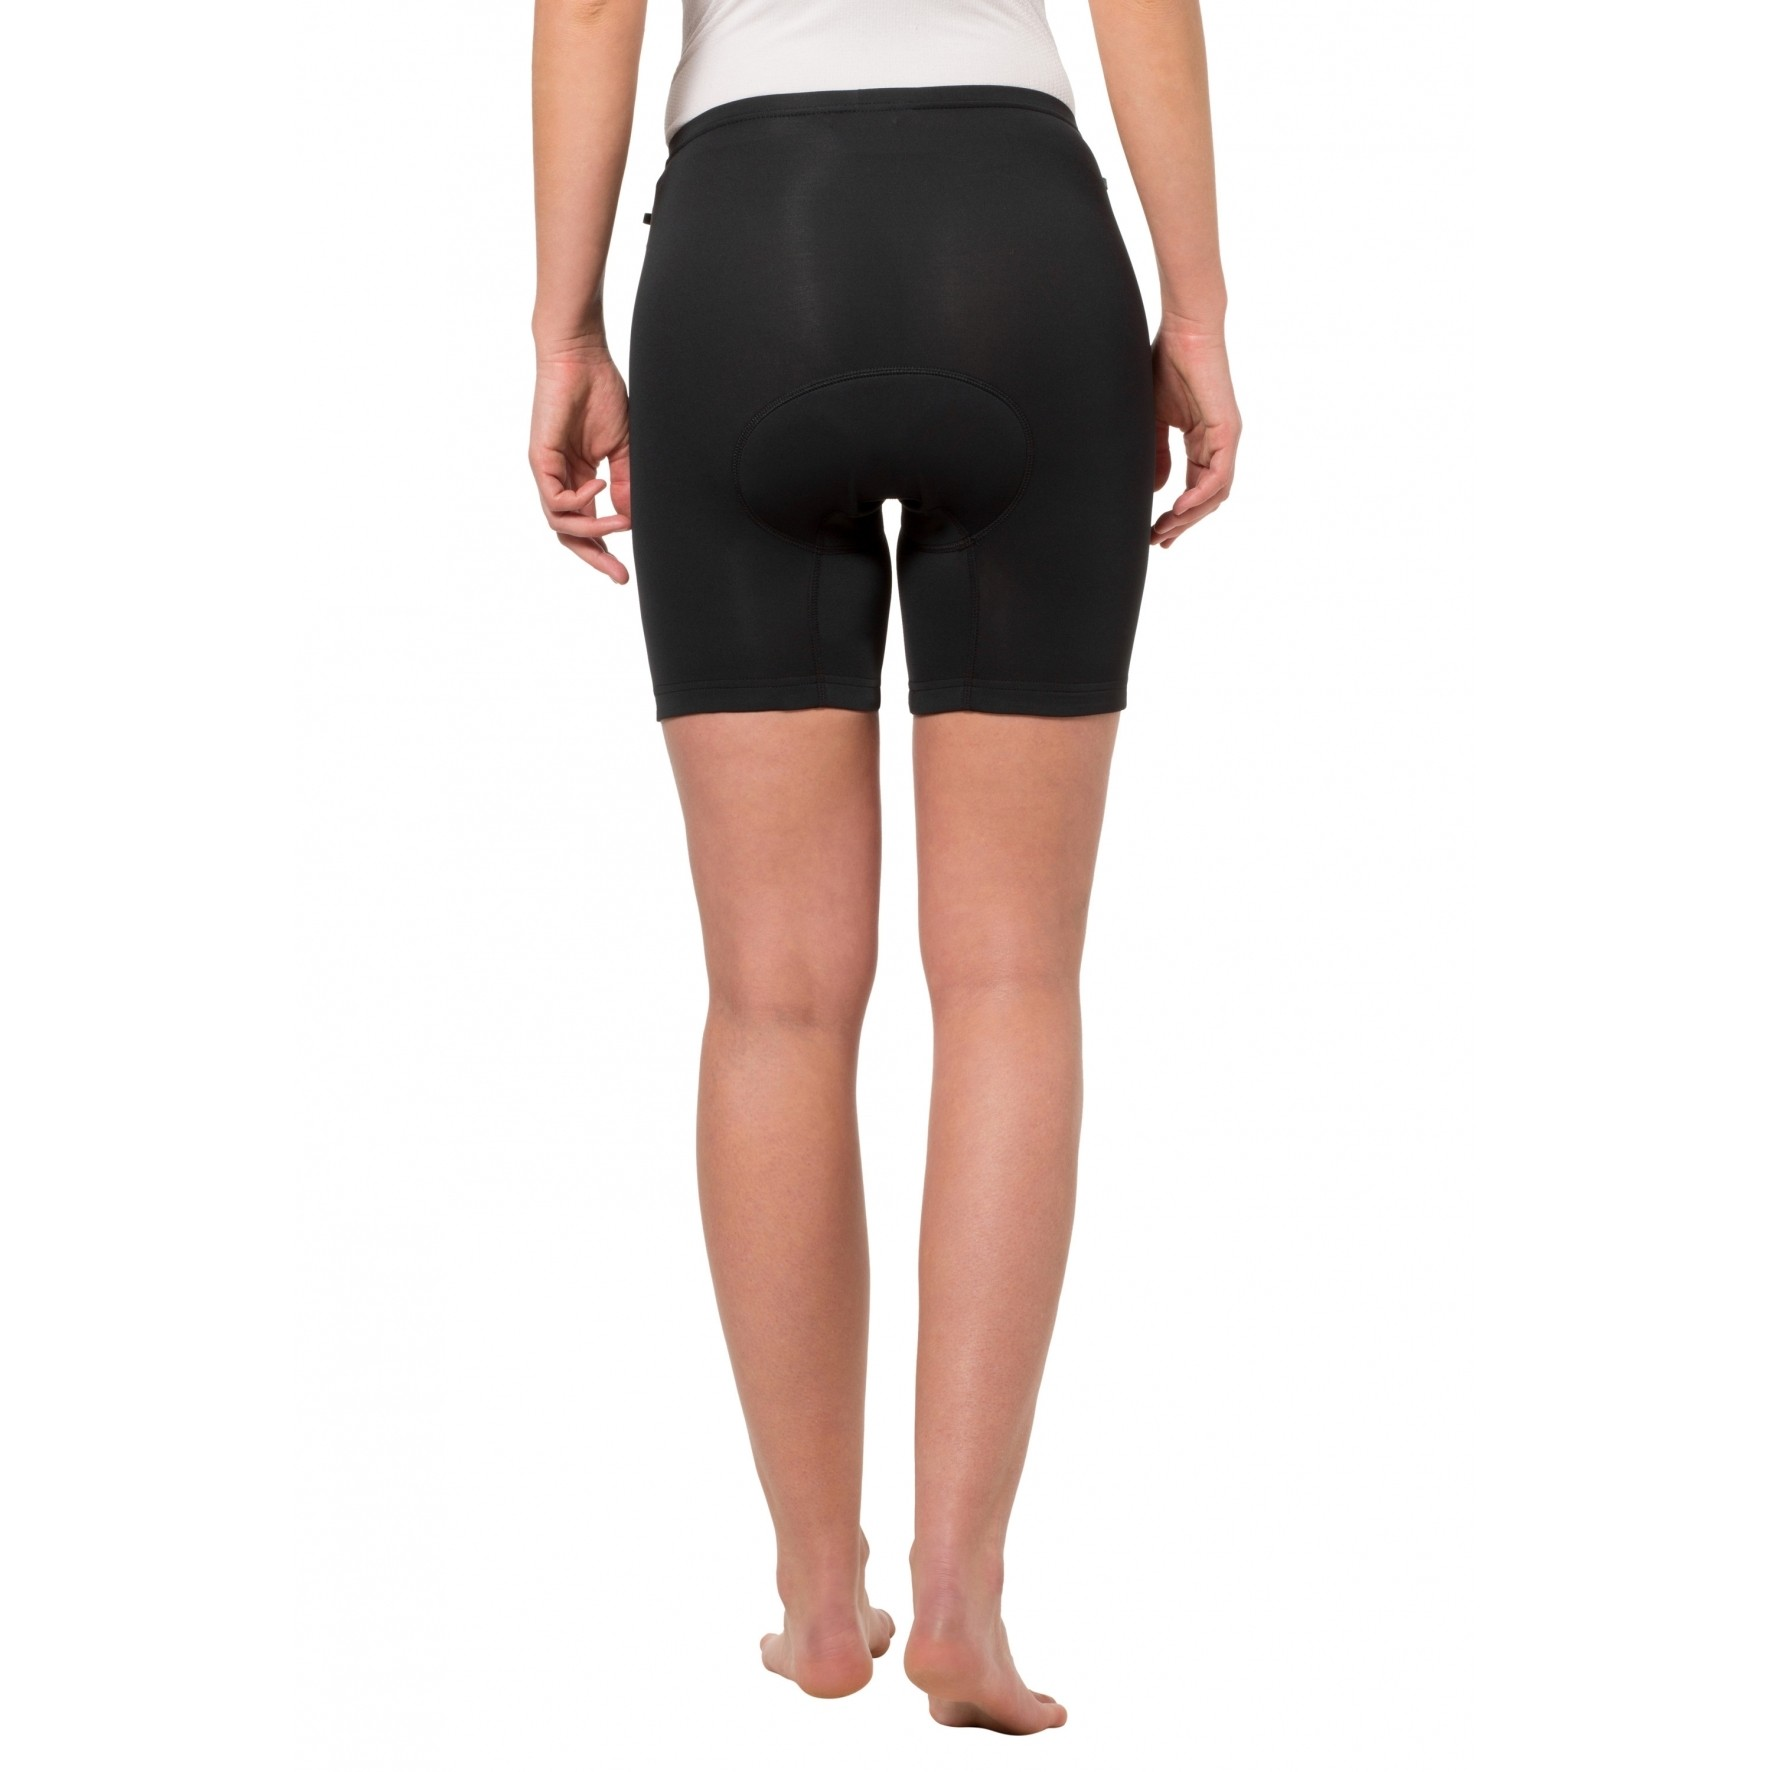 Vaude Bike Innerpants Under Short Women - Black